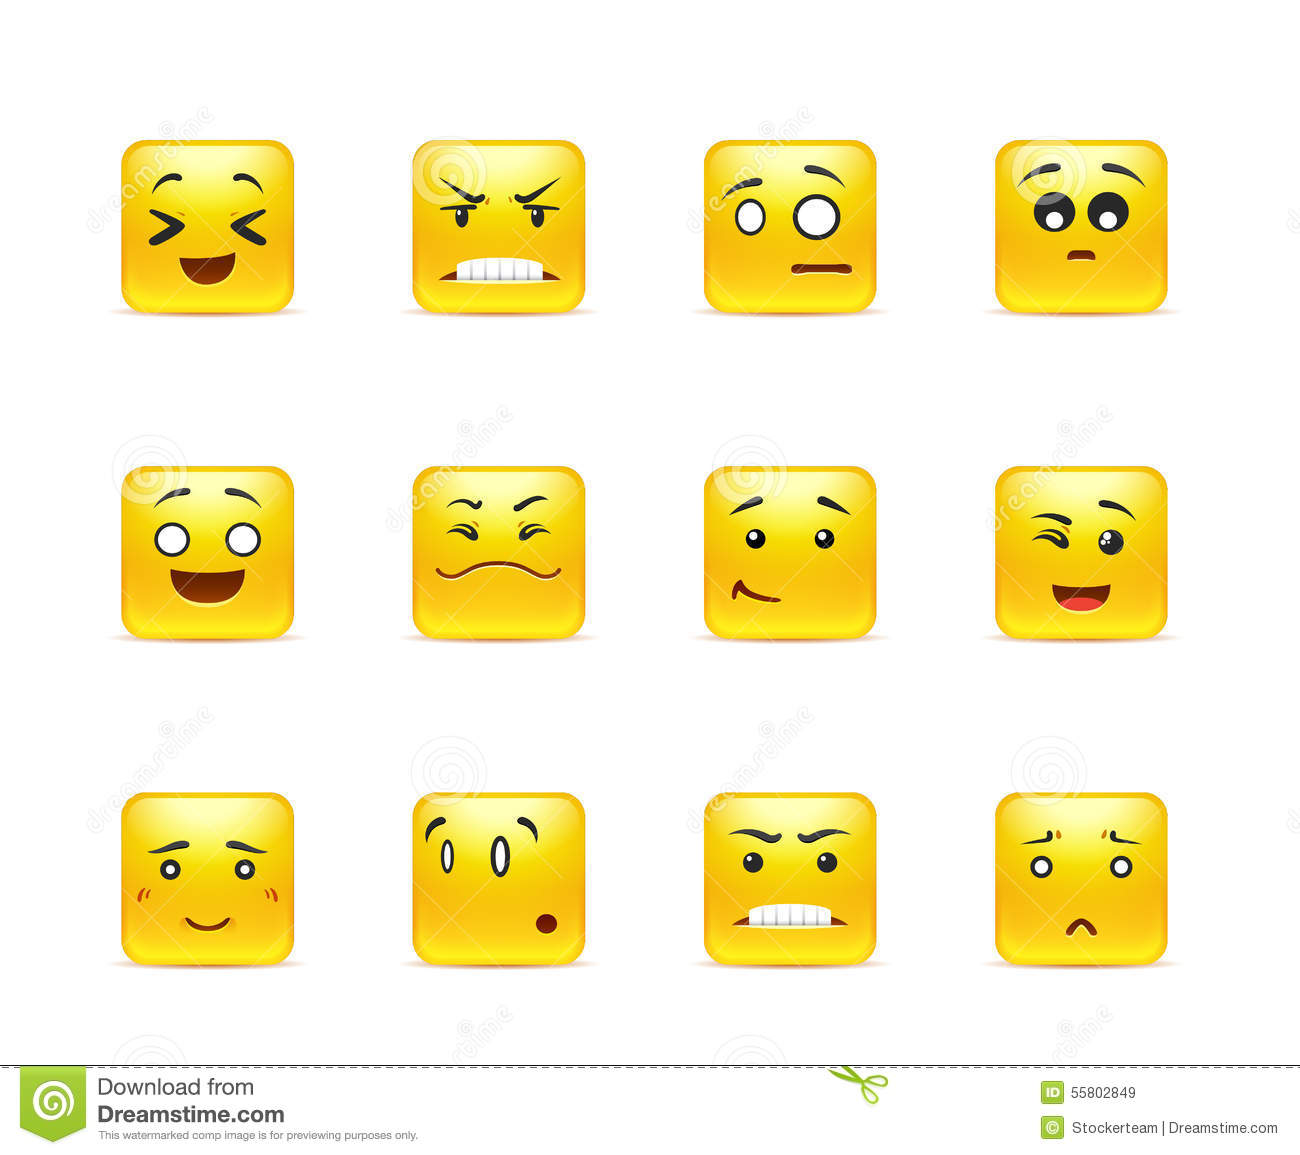 Beautiful happy yellow square anime smiley in a small set of